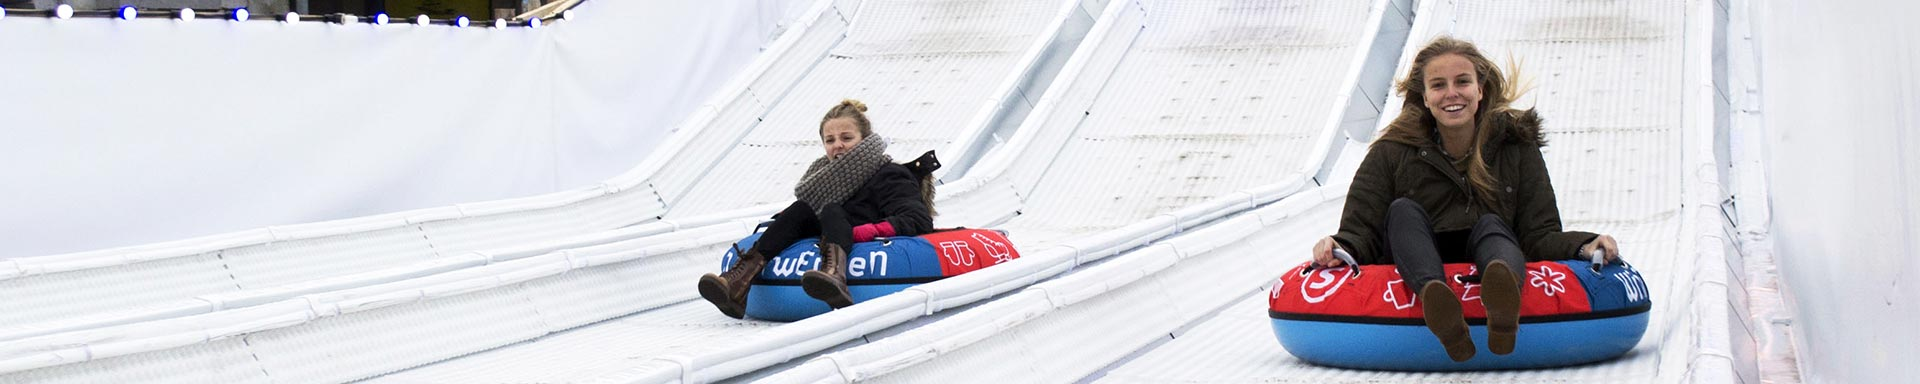 In Poland the biggest summer-winter tubing park in the world